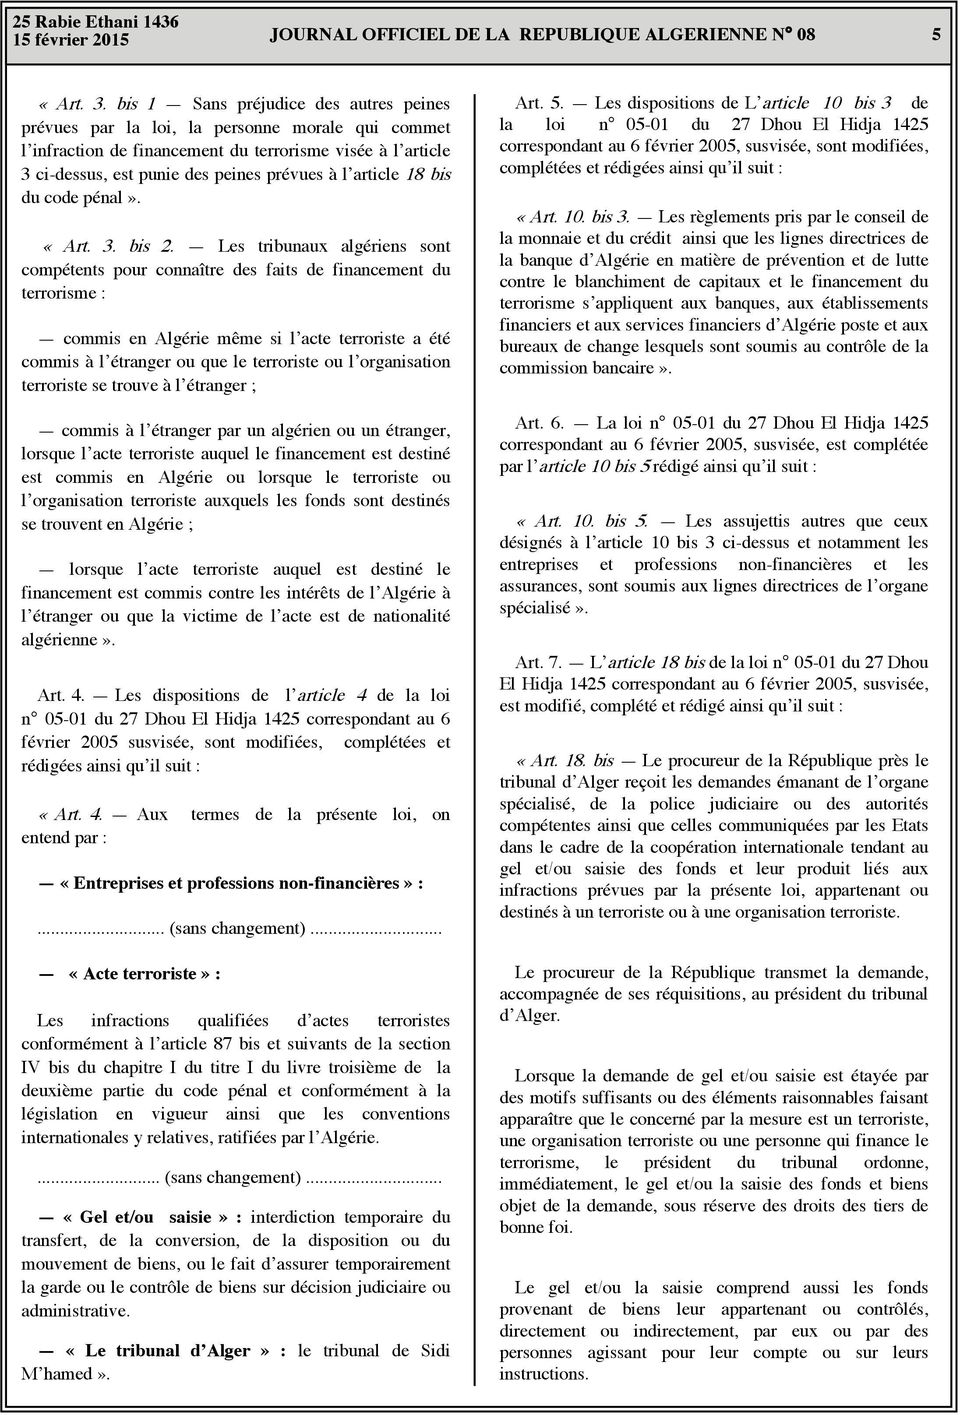 article 18 bis du code pénal». «Art. 3. bis 2.